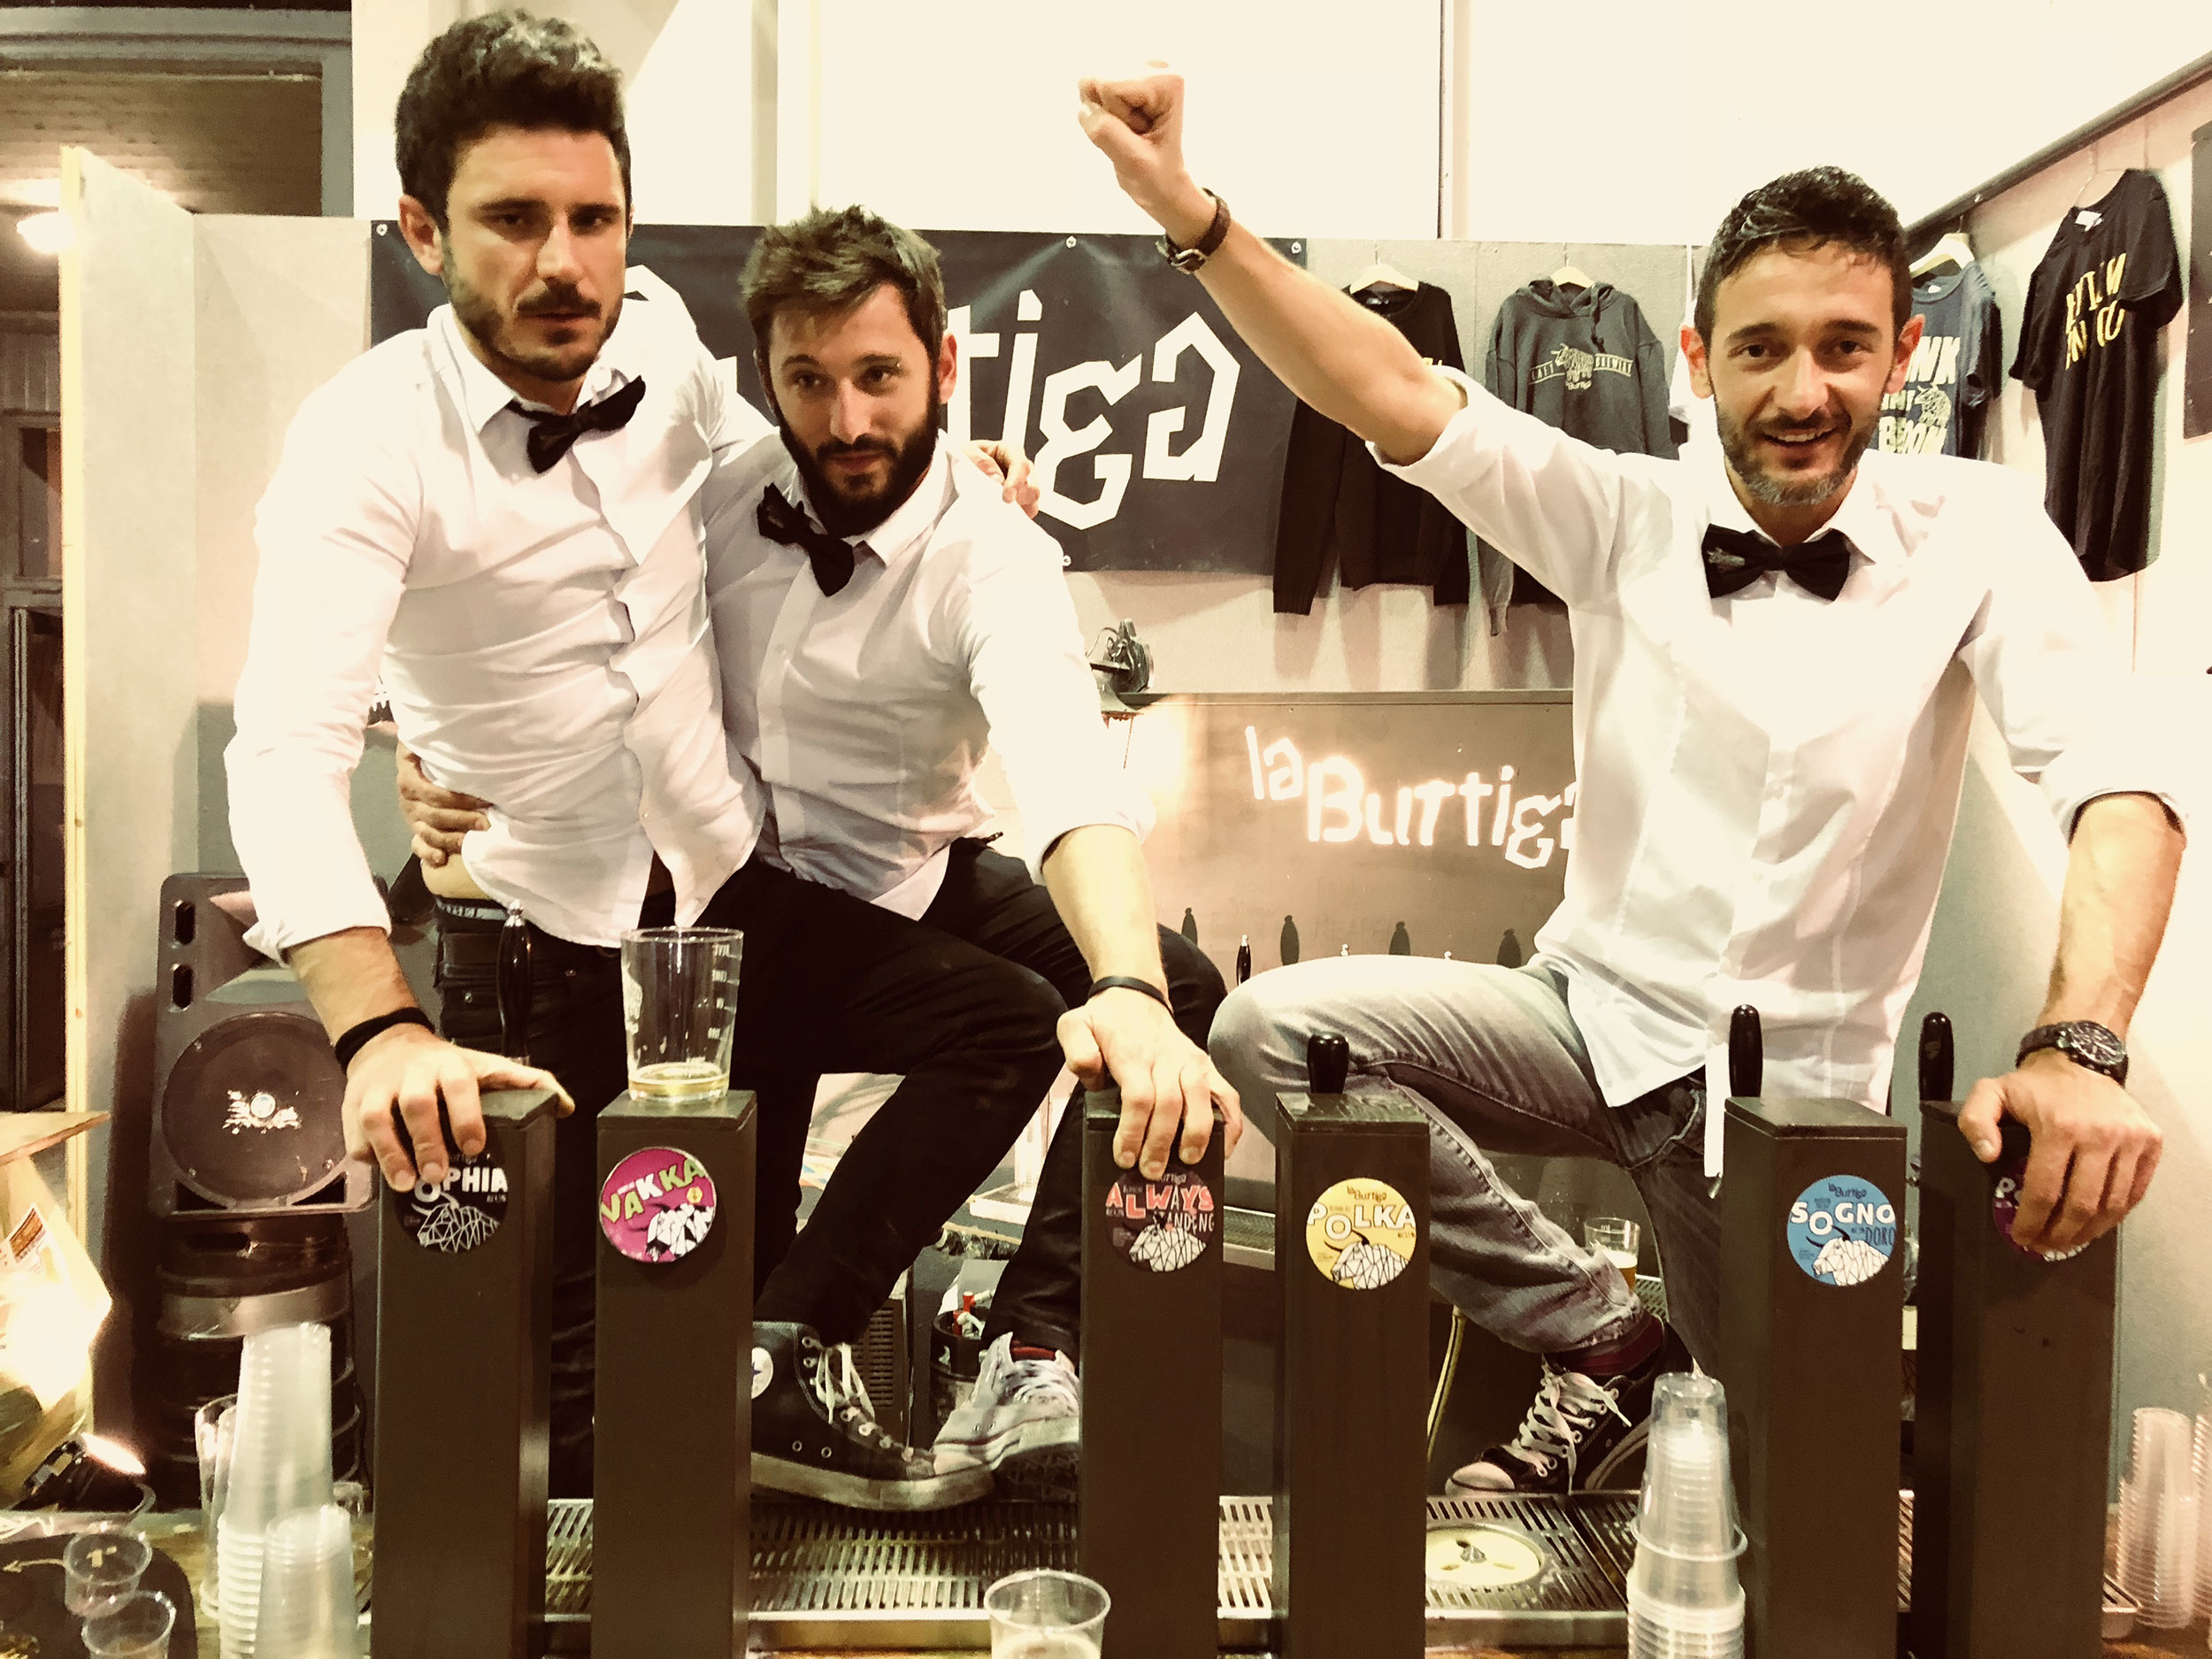 https://www.labuttiga.it/wp-content/uploads/2020/06/La-Buttiga-Piacenza-Beer-Fest.jpg